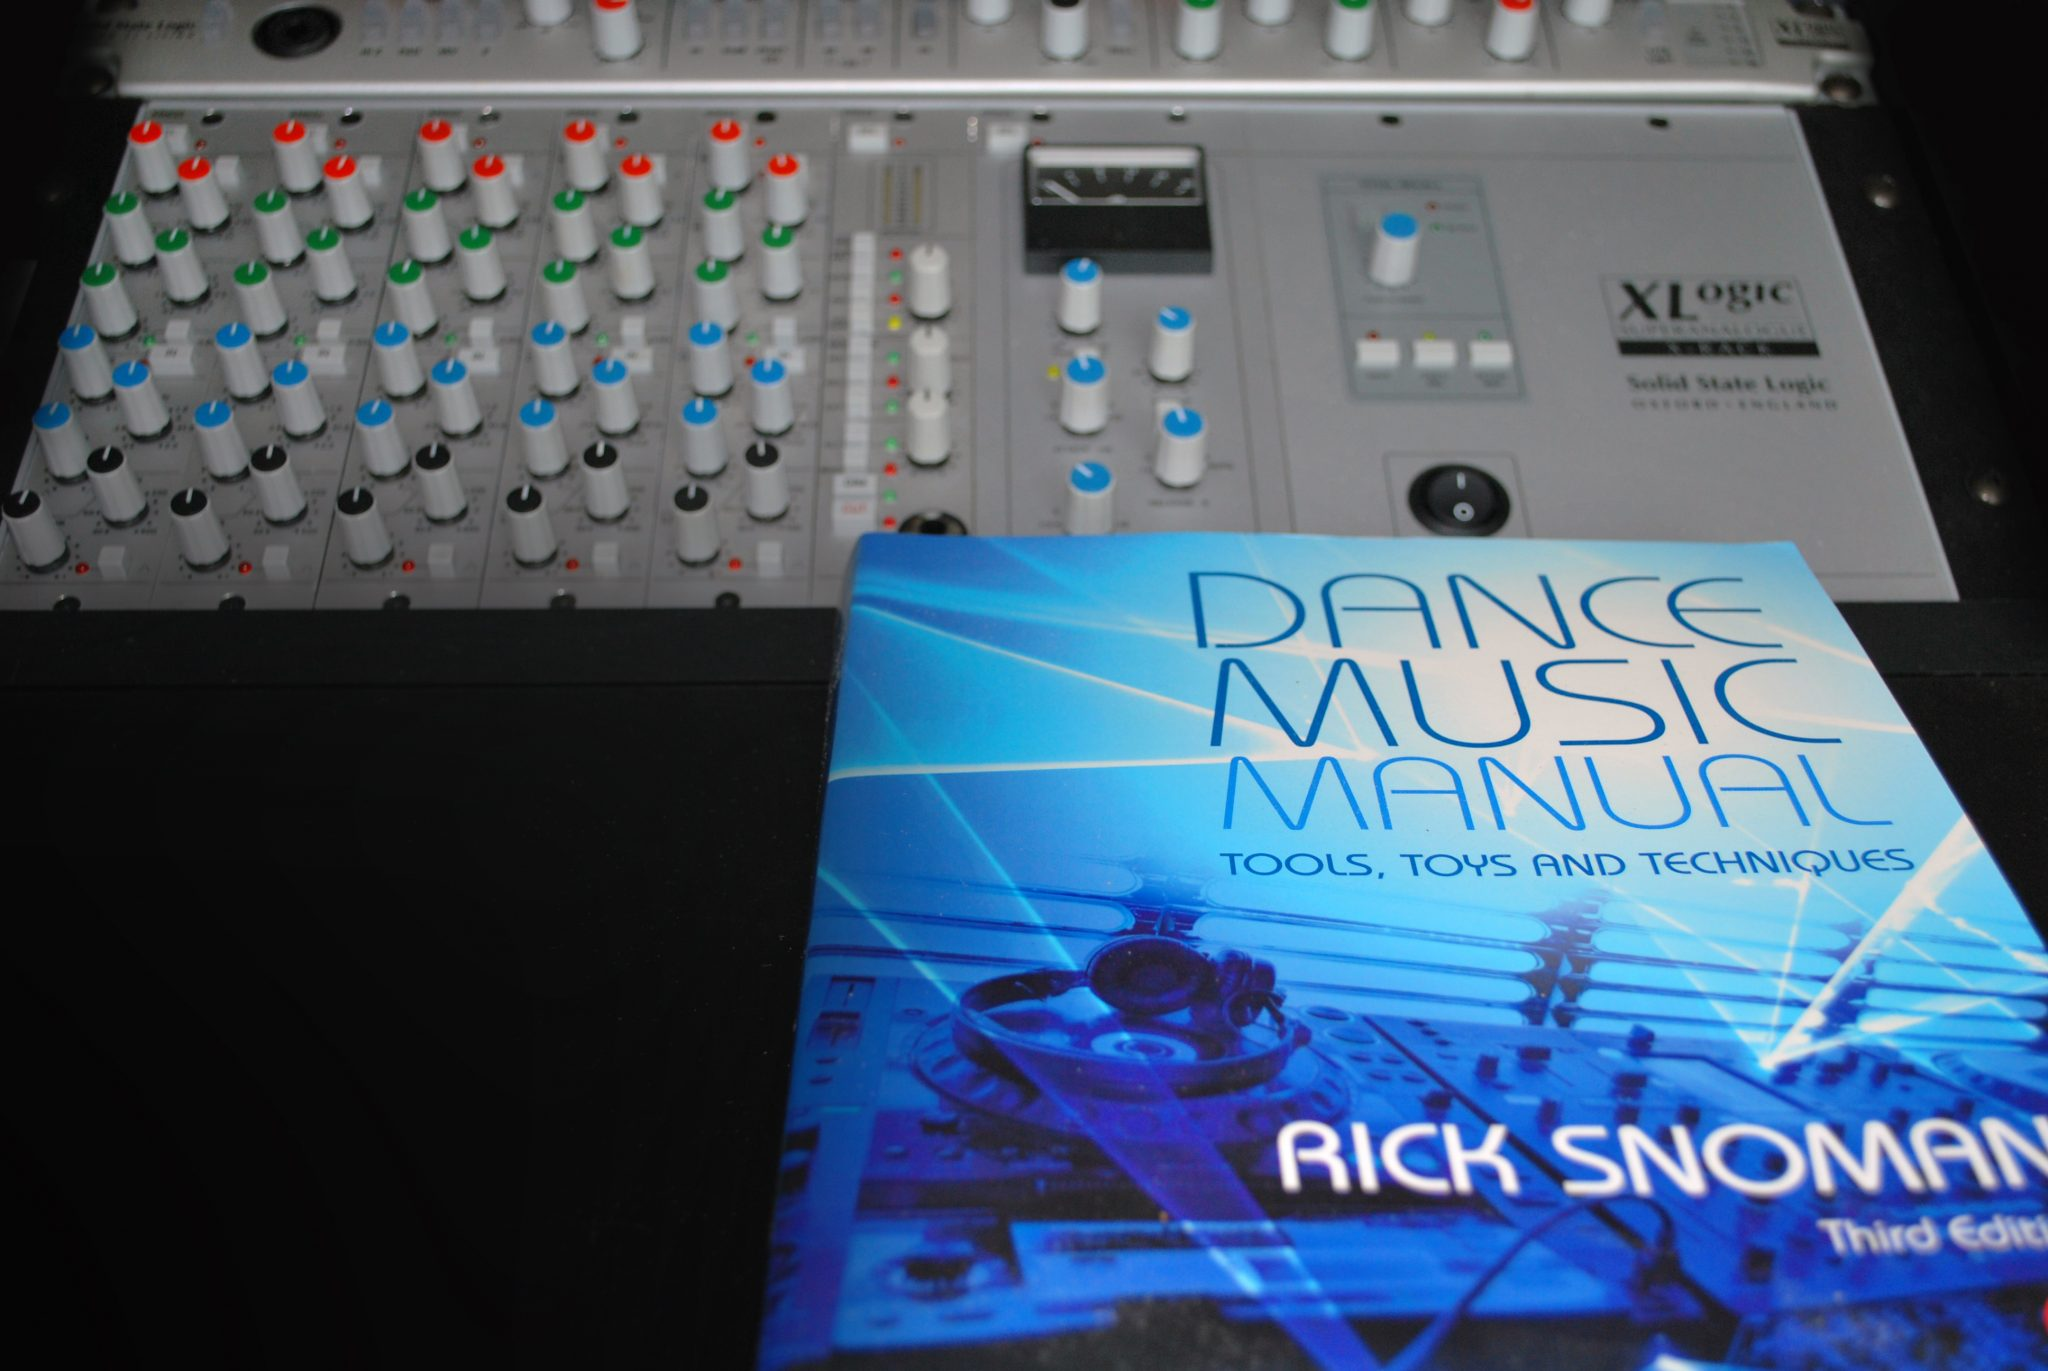 Dance Music Manual on a desk